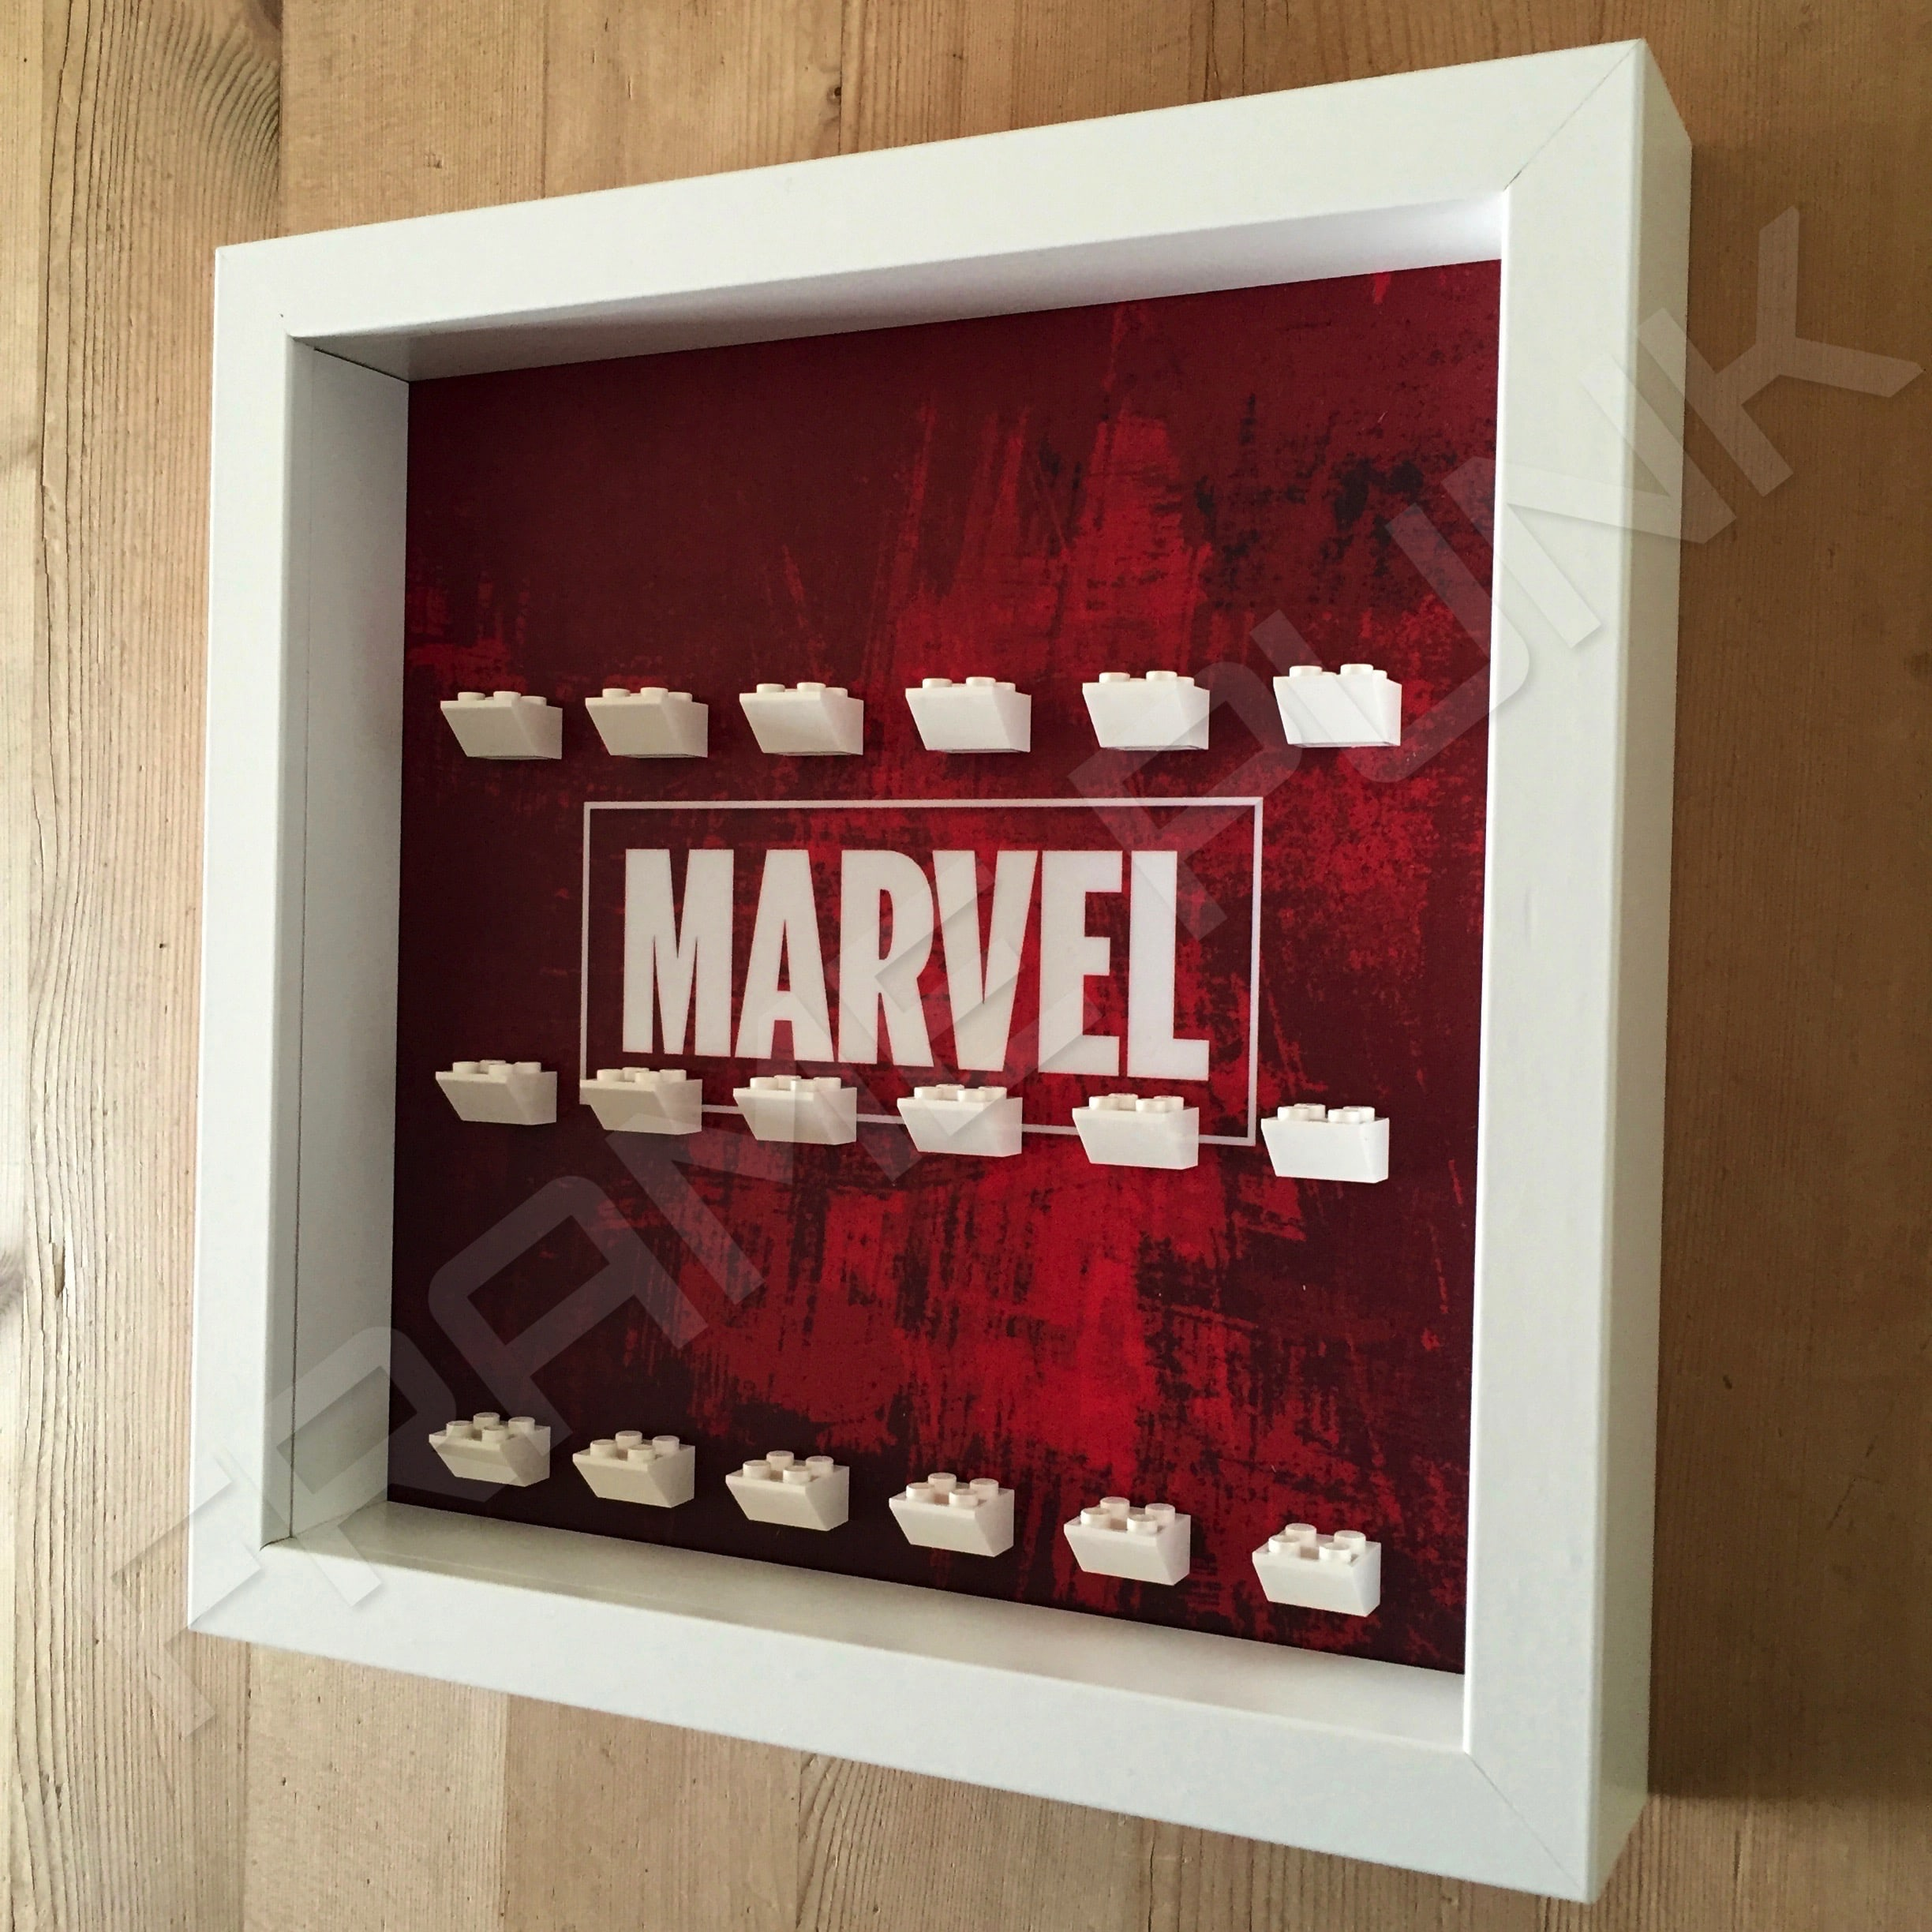 MARVEL Lego Minifigure Display Frame (White) - Frame Punk